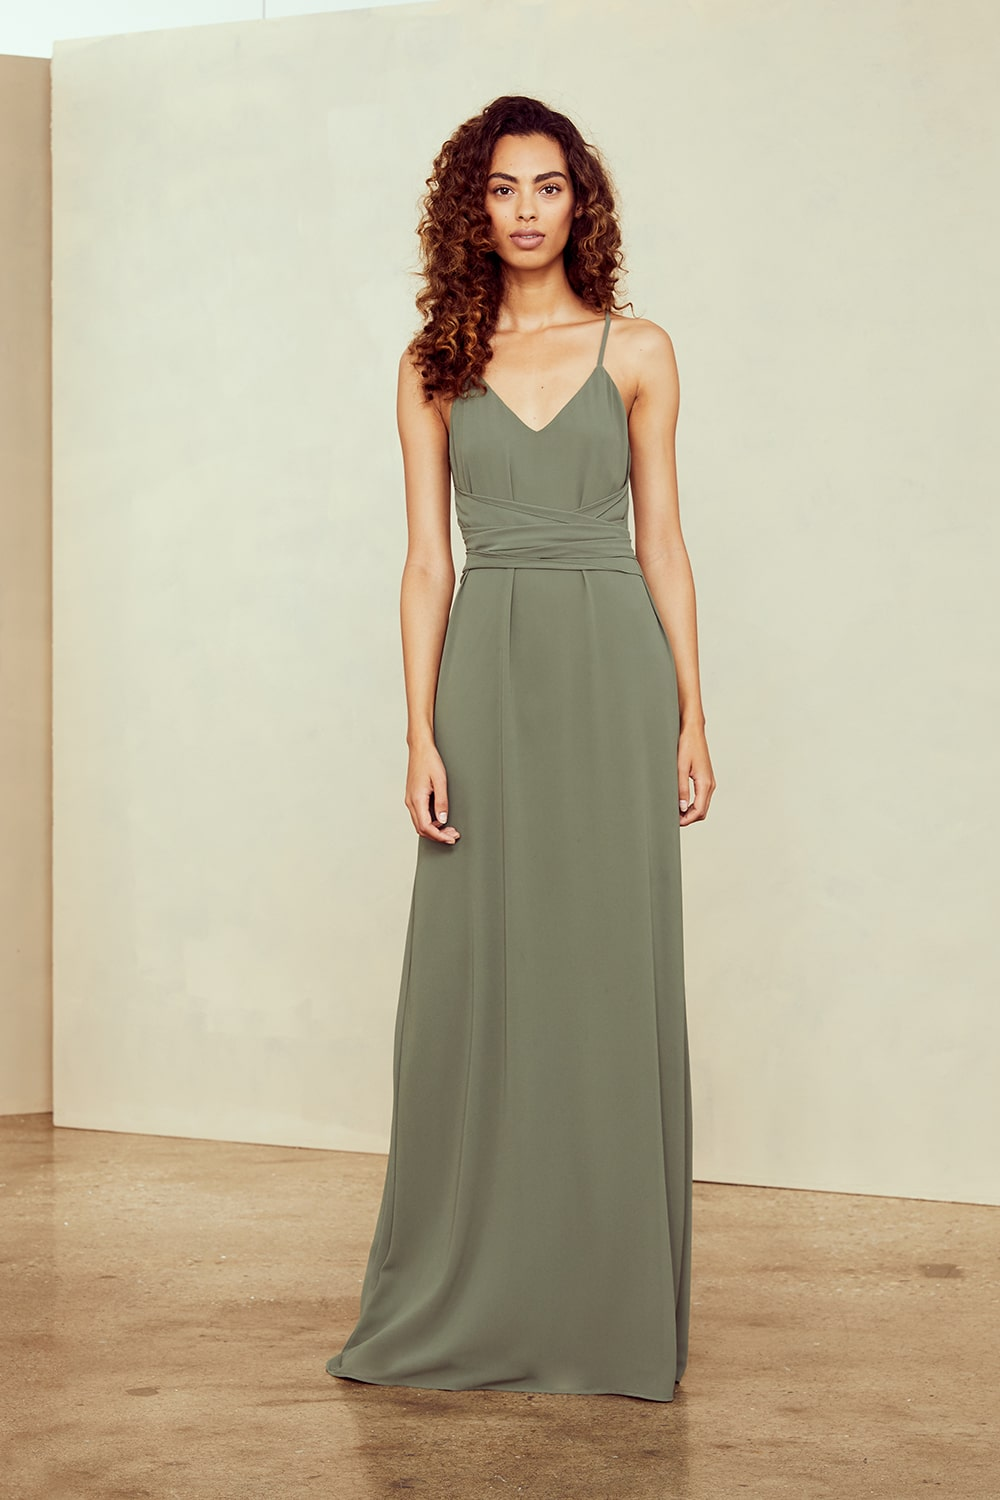 Amsale Nouvelle Bridesmaids style N379 JOY Obi belt spaghetti straps in olive green